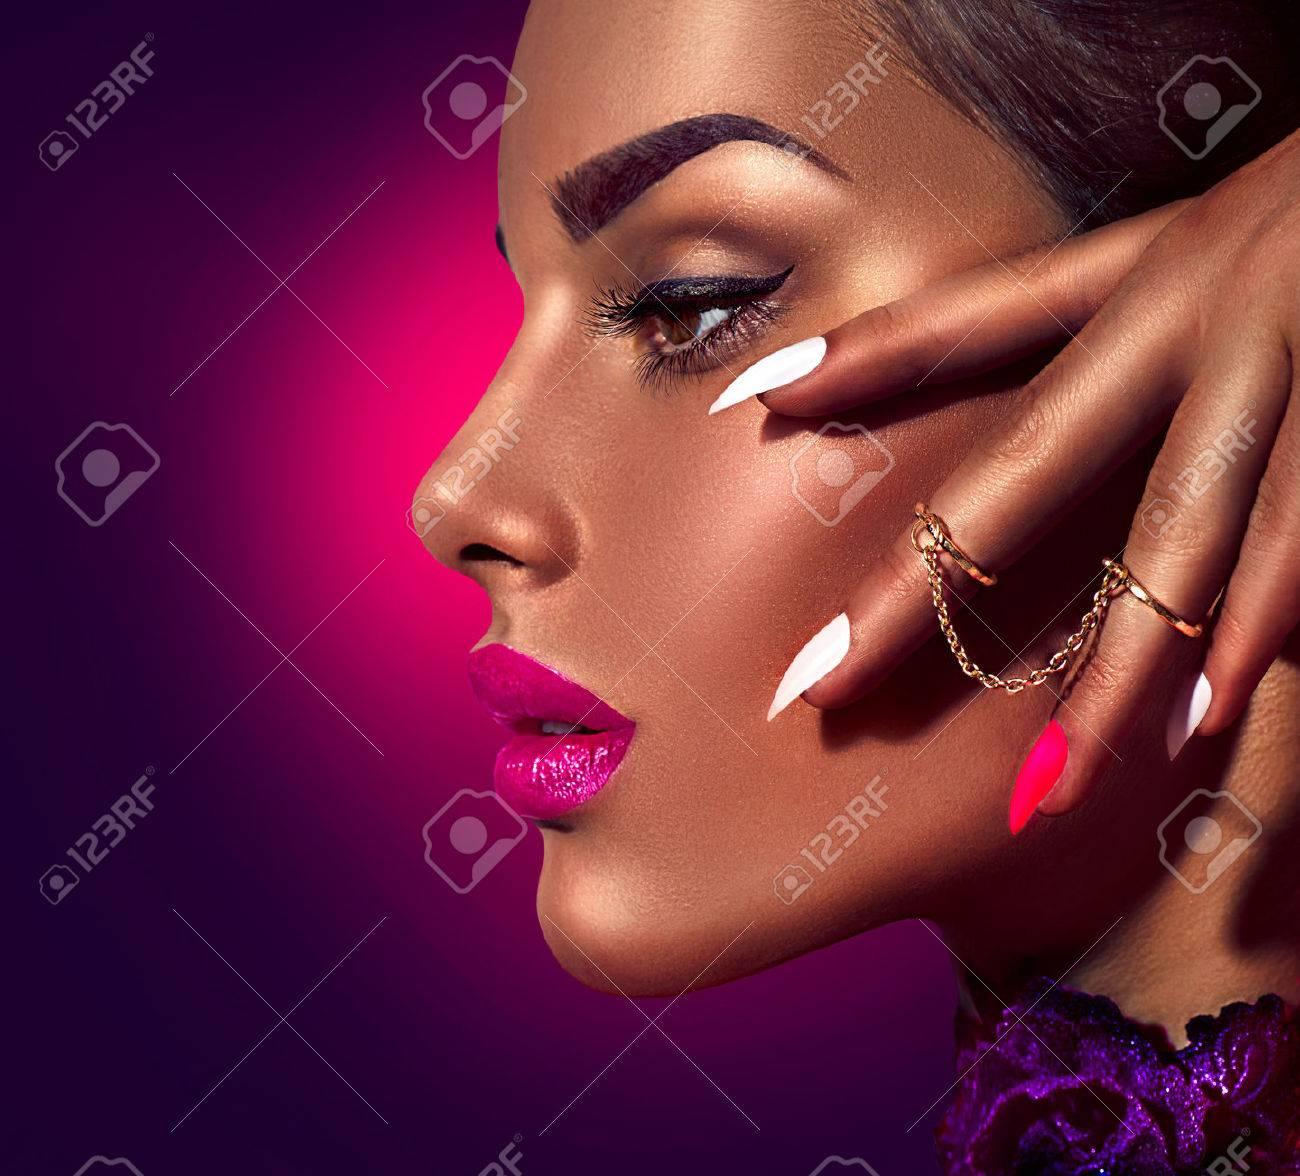 Sexy model with brown skin and purple lips over dark background Banque d'images - 61789363